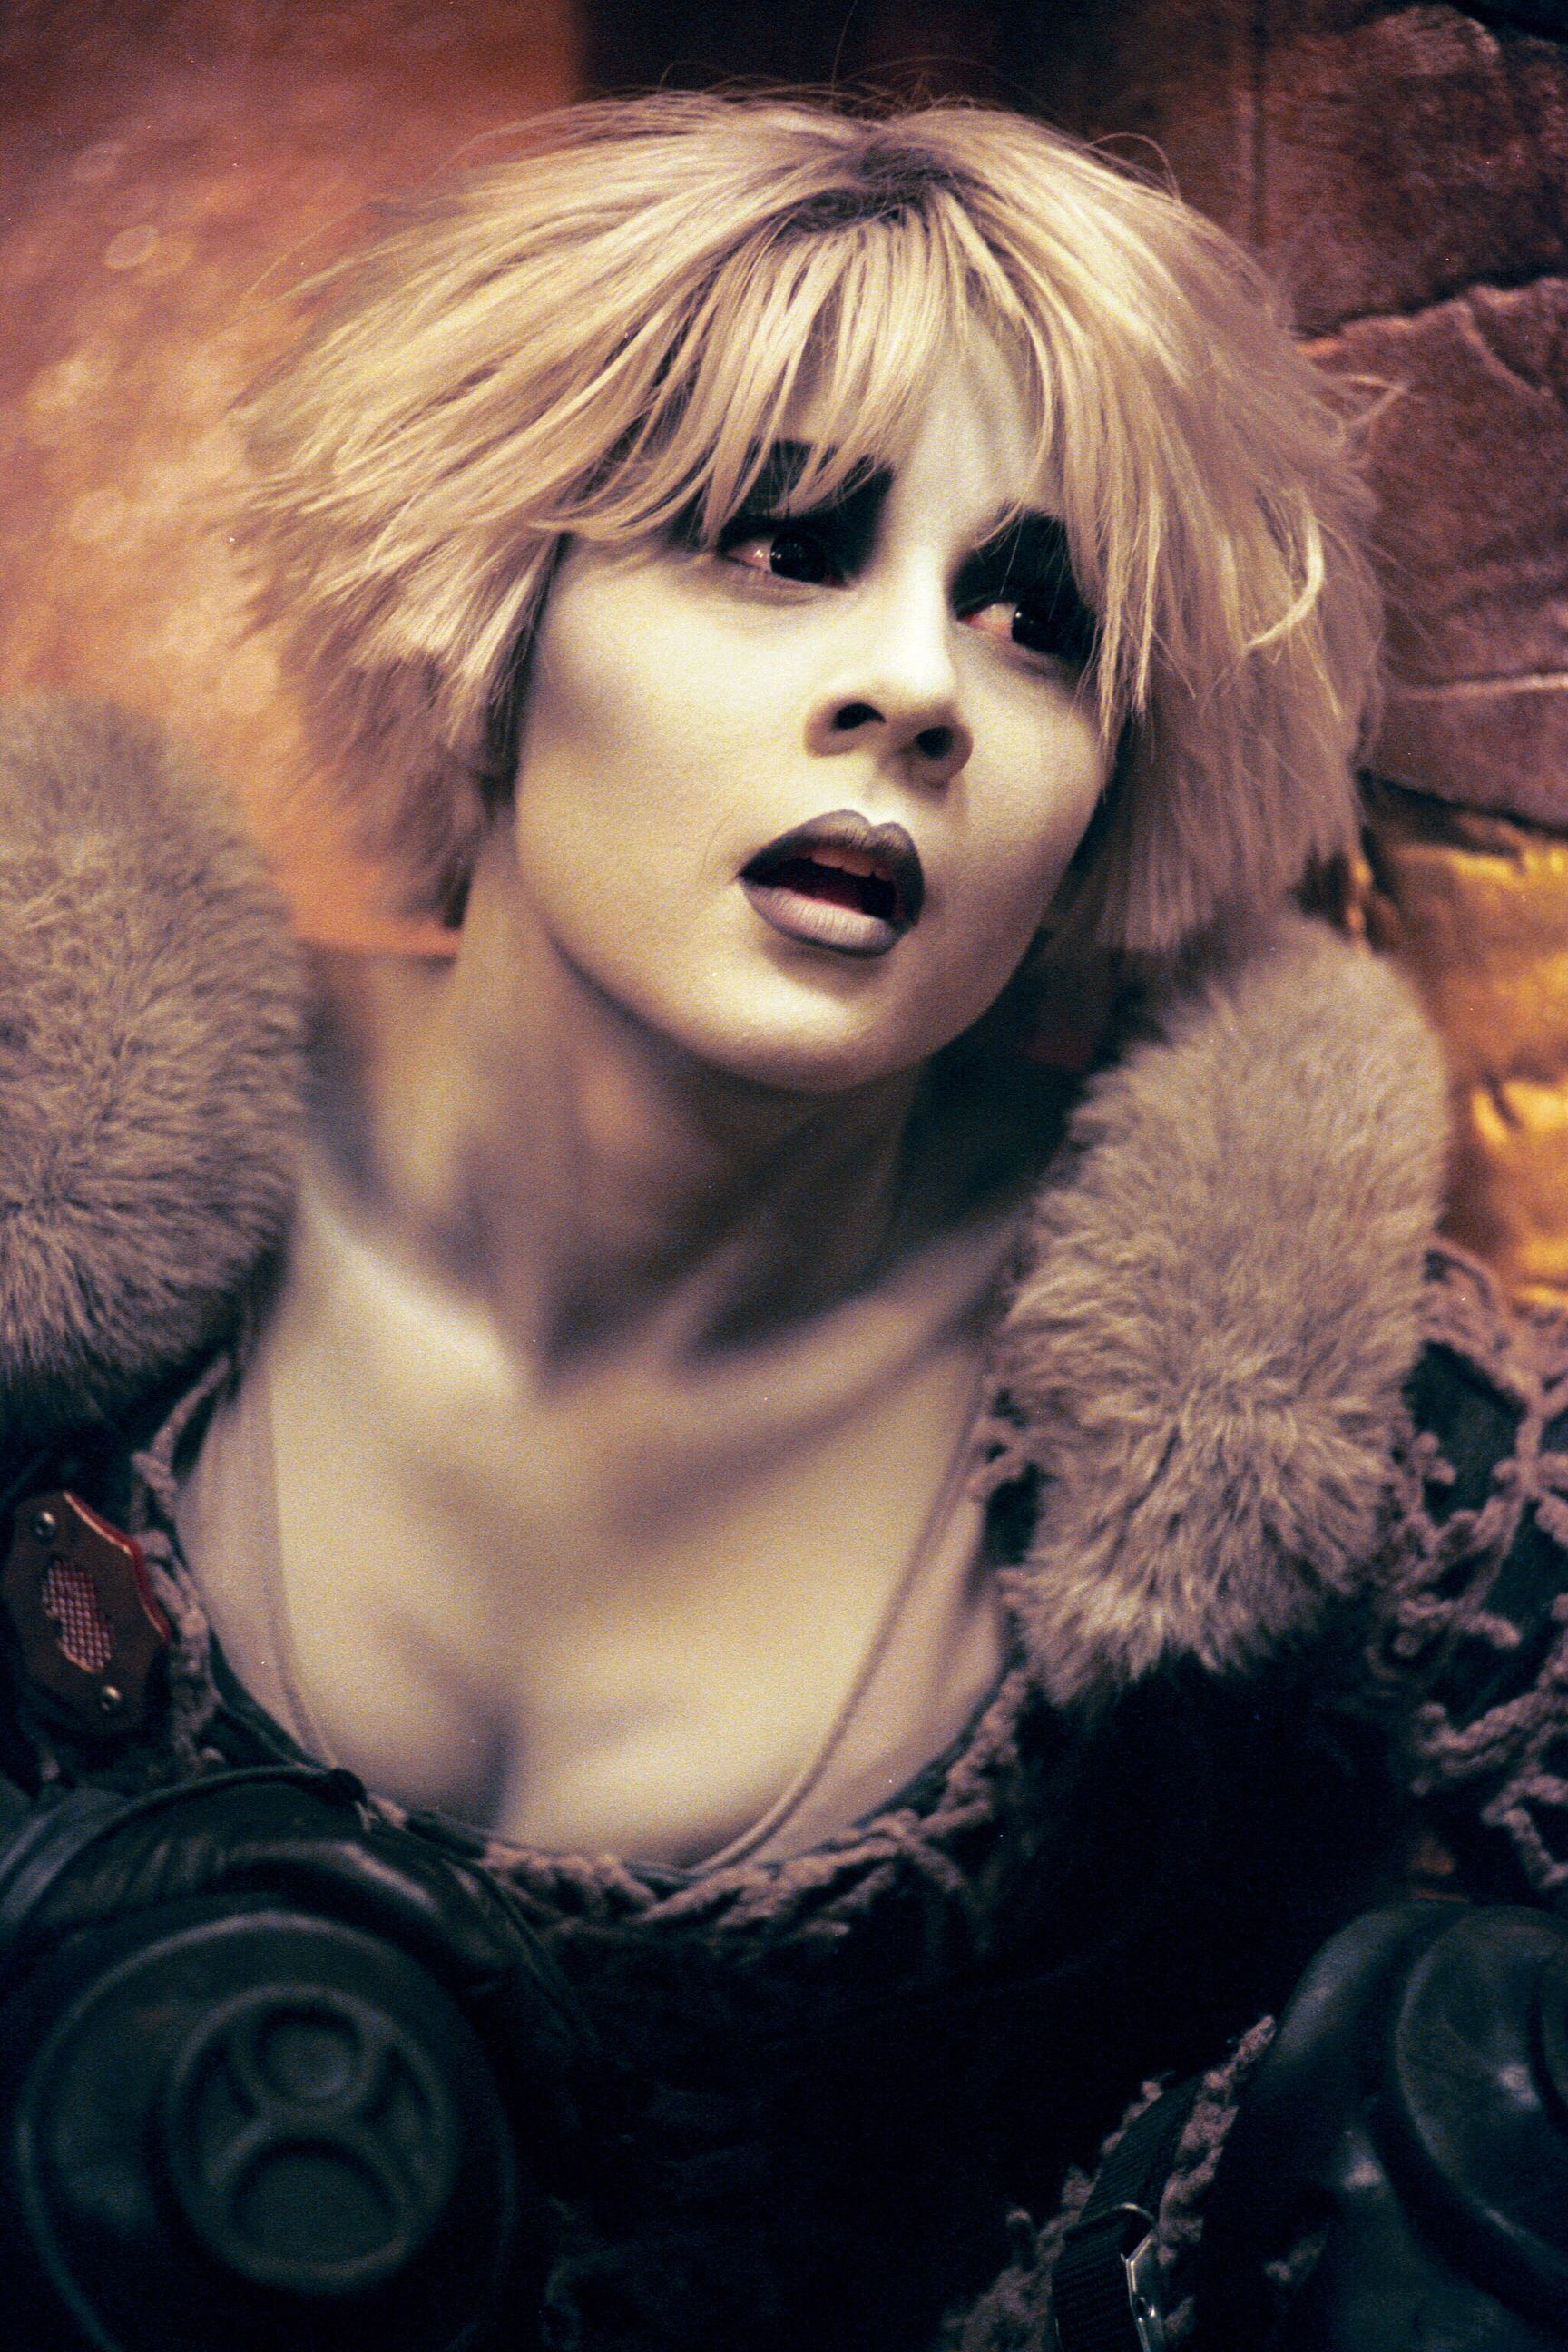 chiana farscape - photo #12